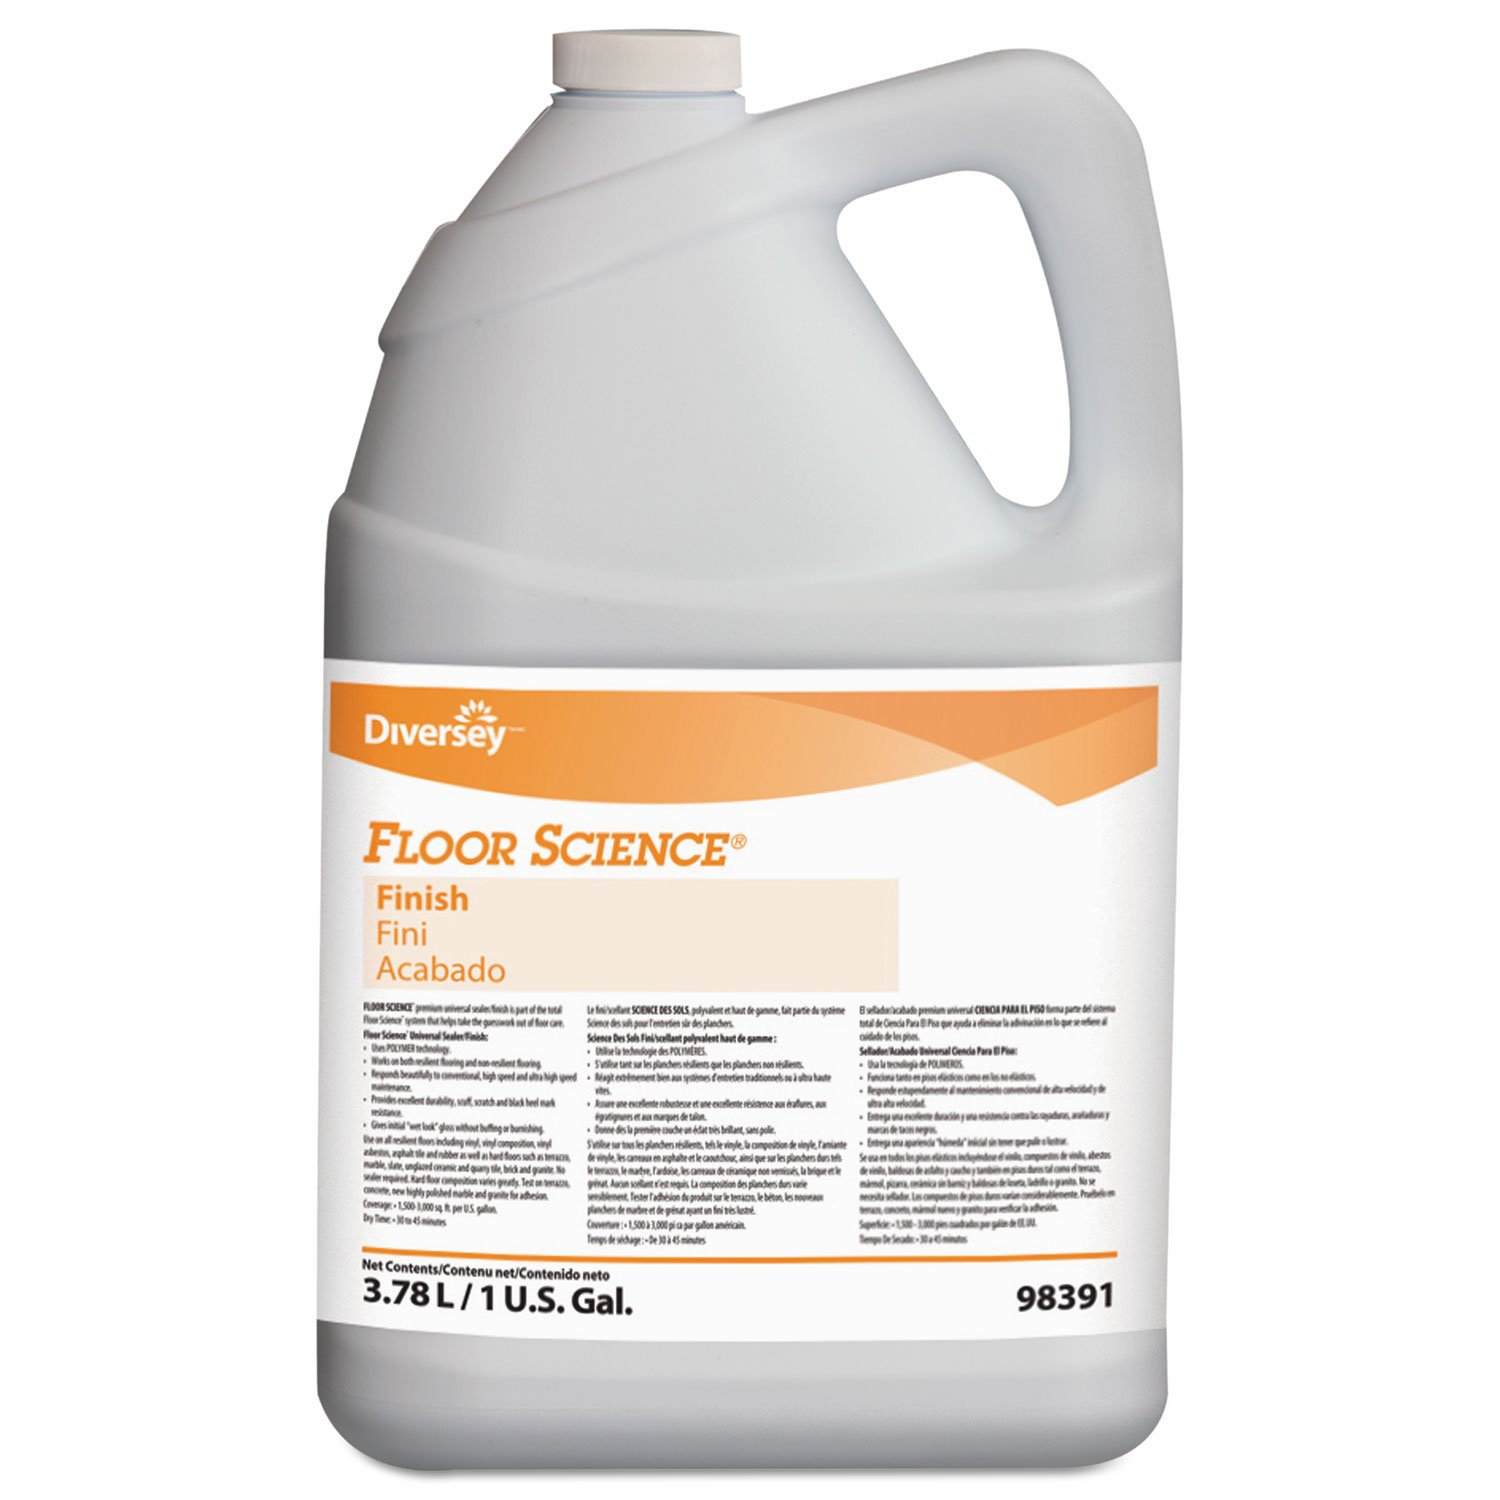 johnson wax Manufacturers of domestic chemicals and cleaning products.